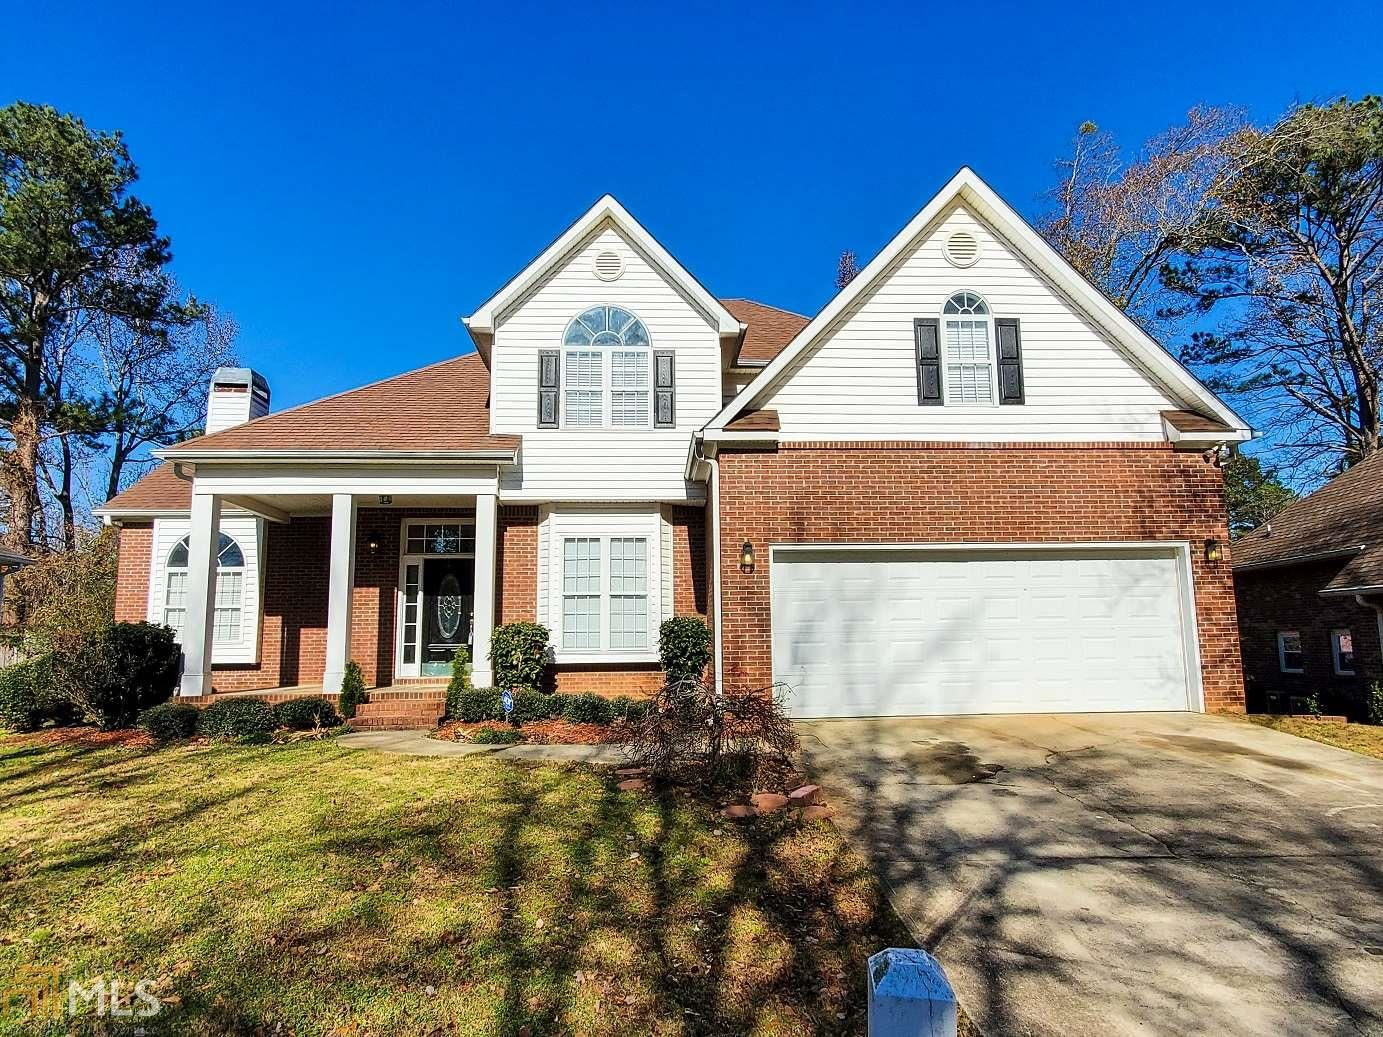 180 Carriage Chase, Fayetteville, GA 30214 - MLS#: 8903647